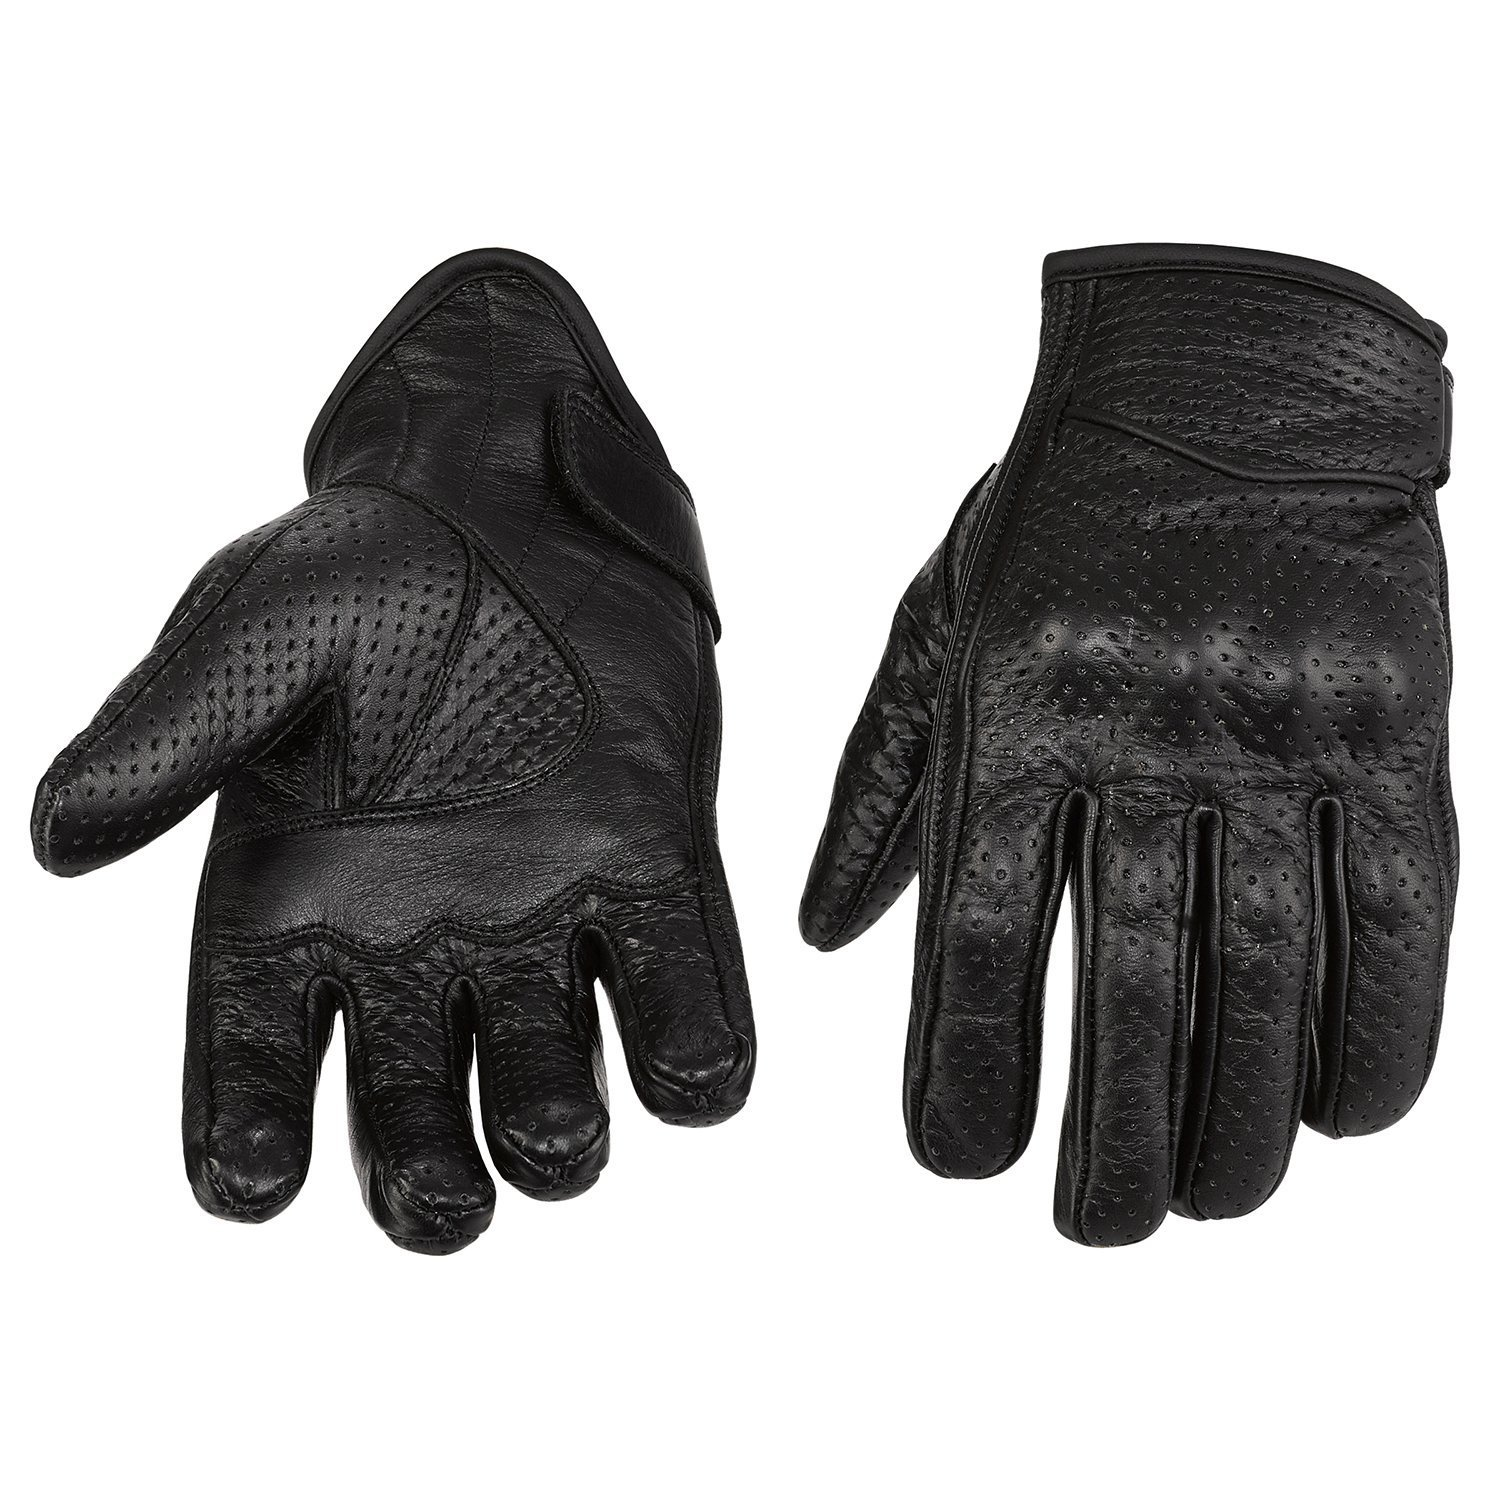 NEW PRODUCT Viking Cycle Men's Premium Leather Perforated Motorcycle Cruiser Gloves (Small)